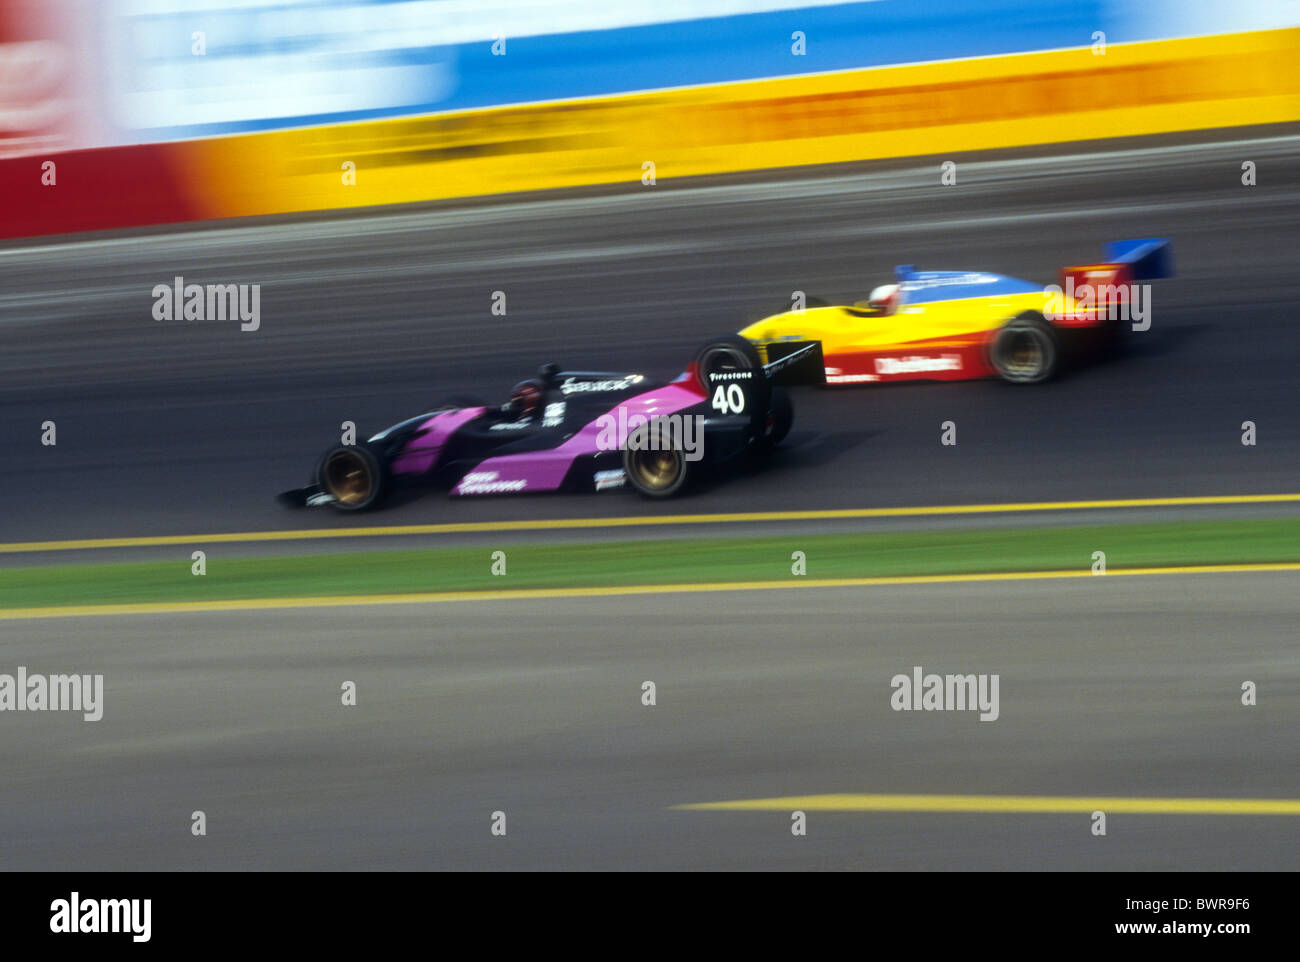 Blurred auto racing action. - Stock Image